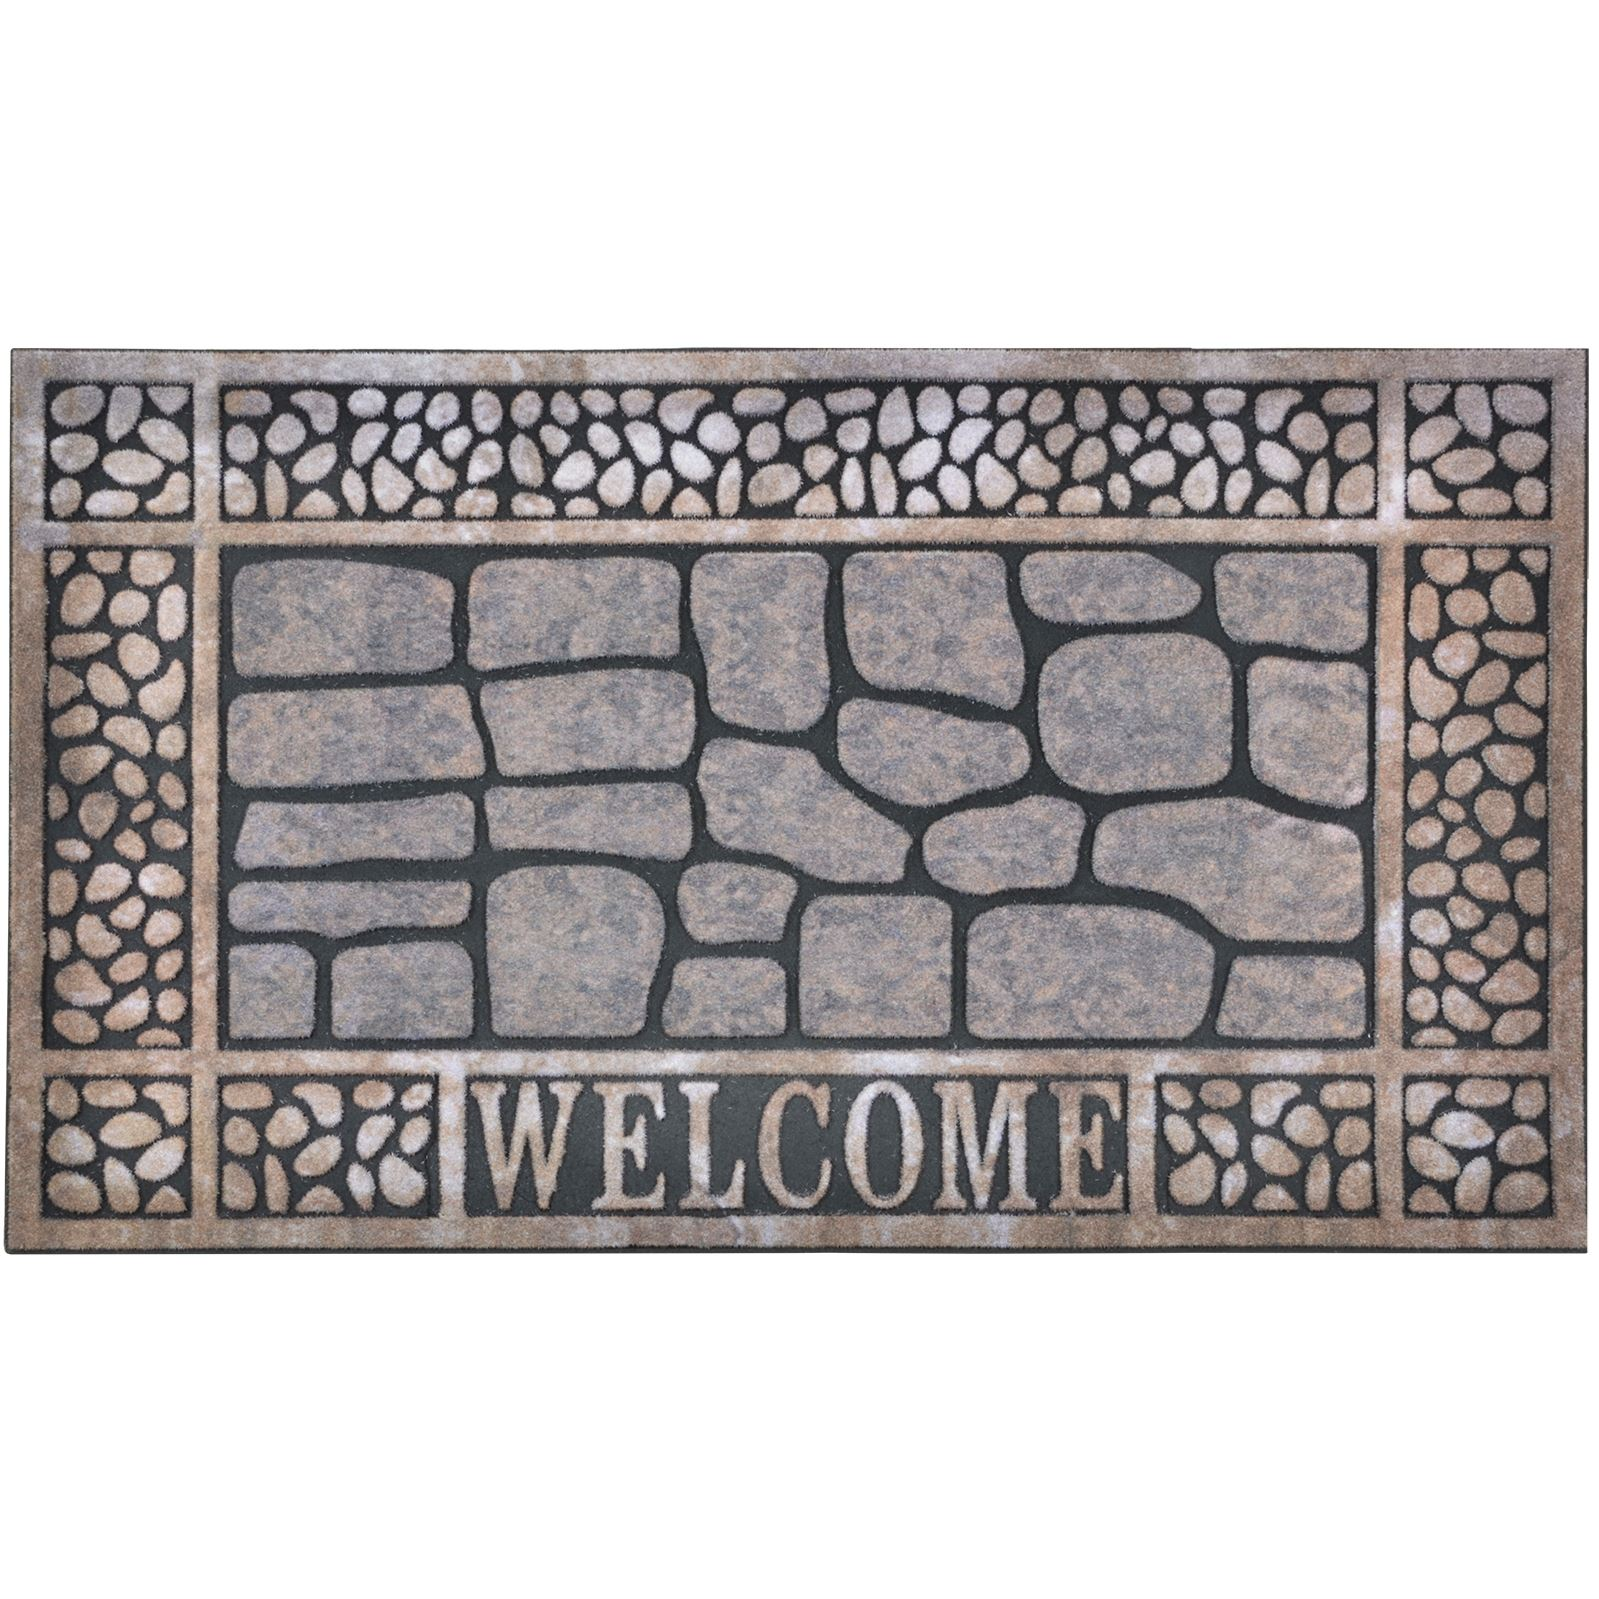 Large 75 X 45cm Heavy Duty Rubber Backed Door Mat Welcome